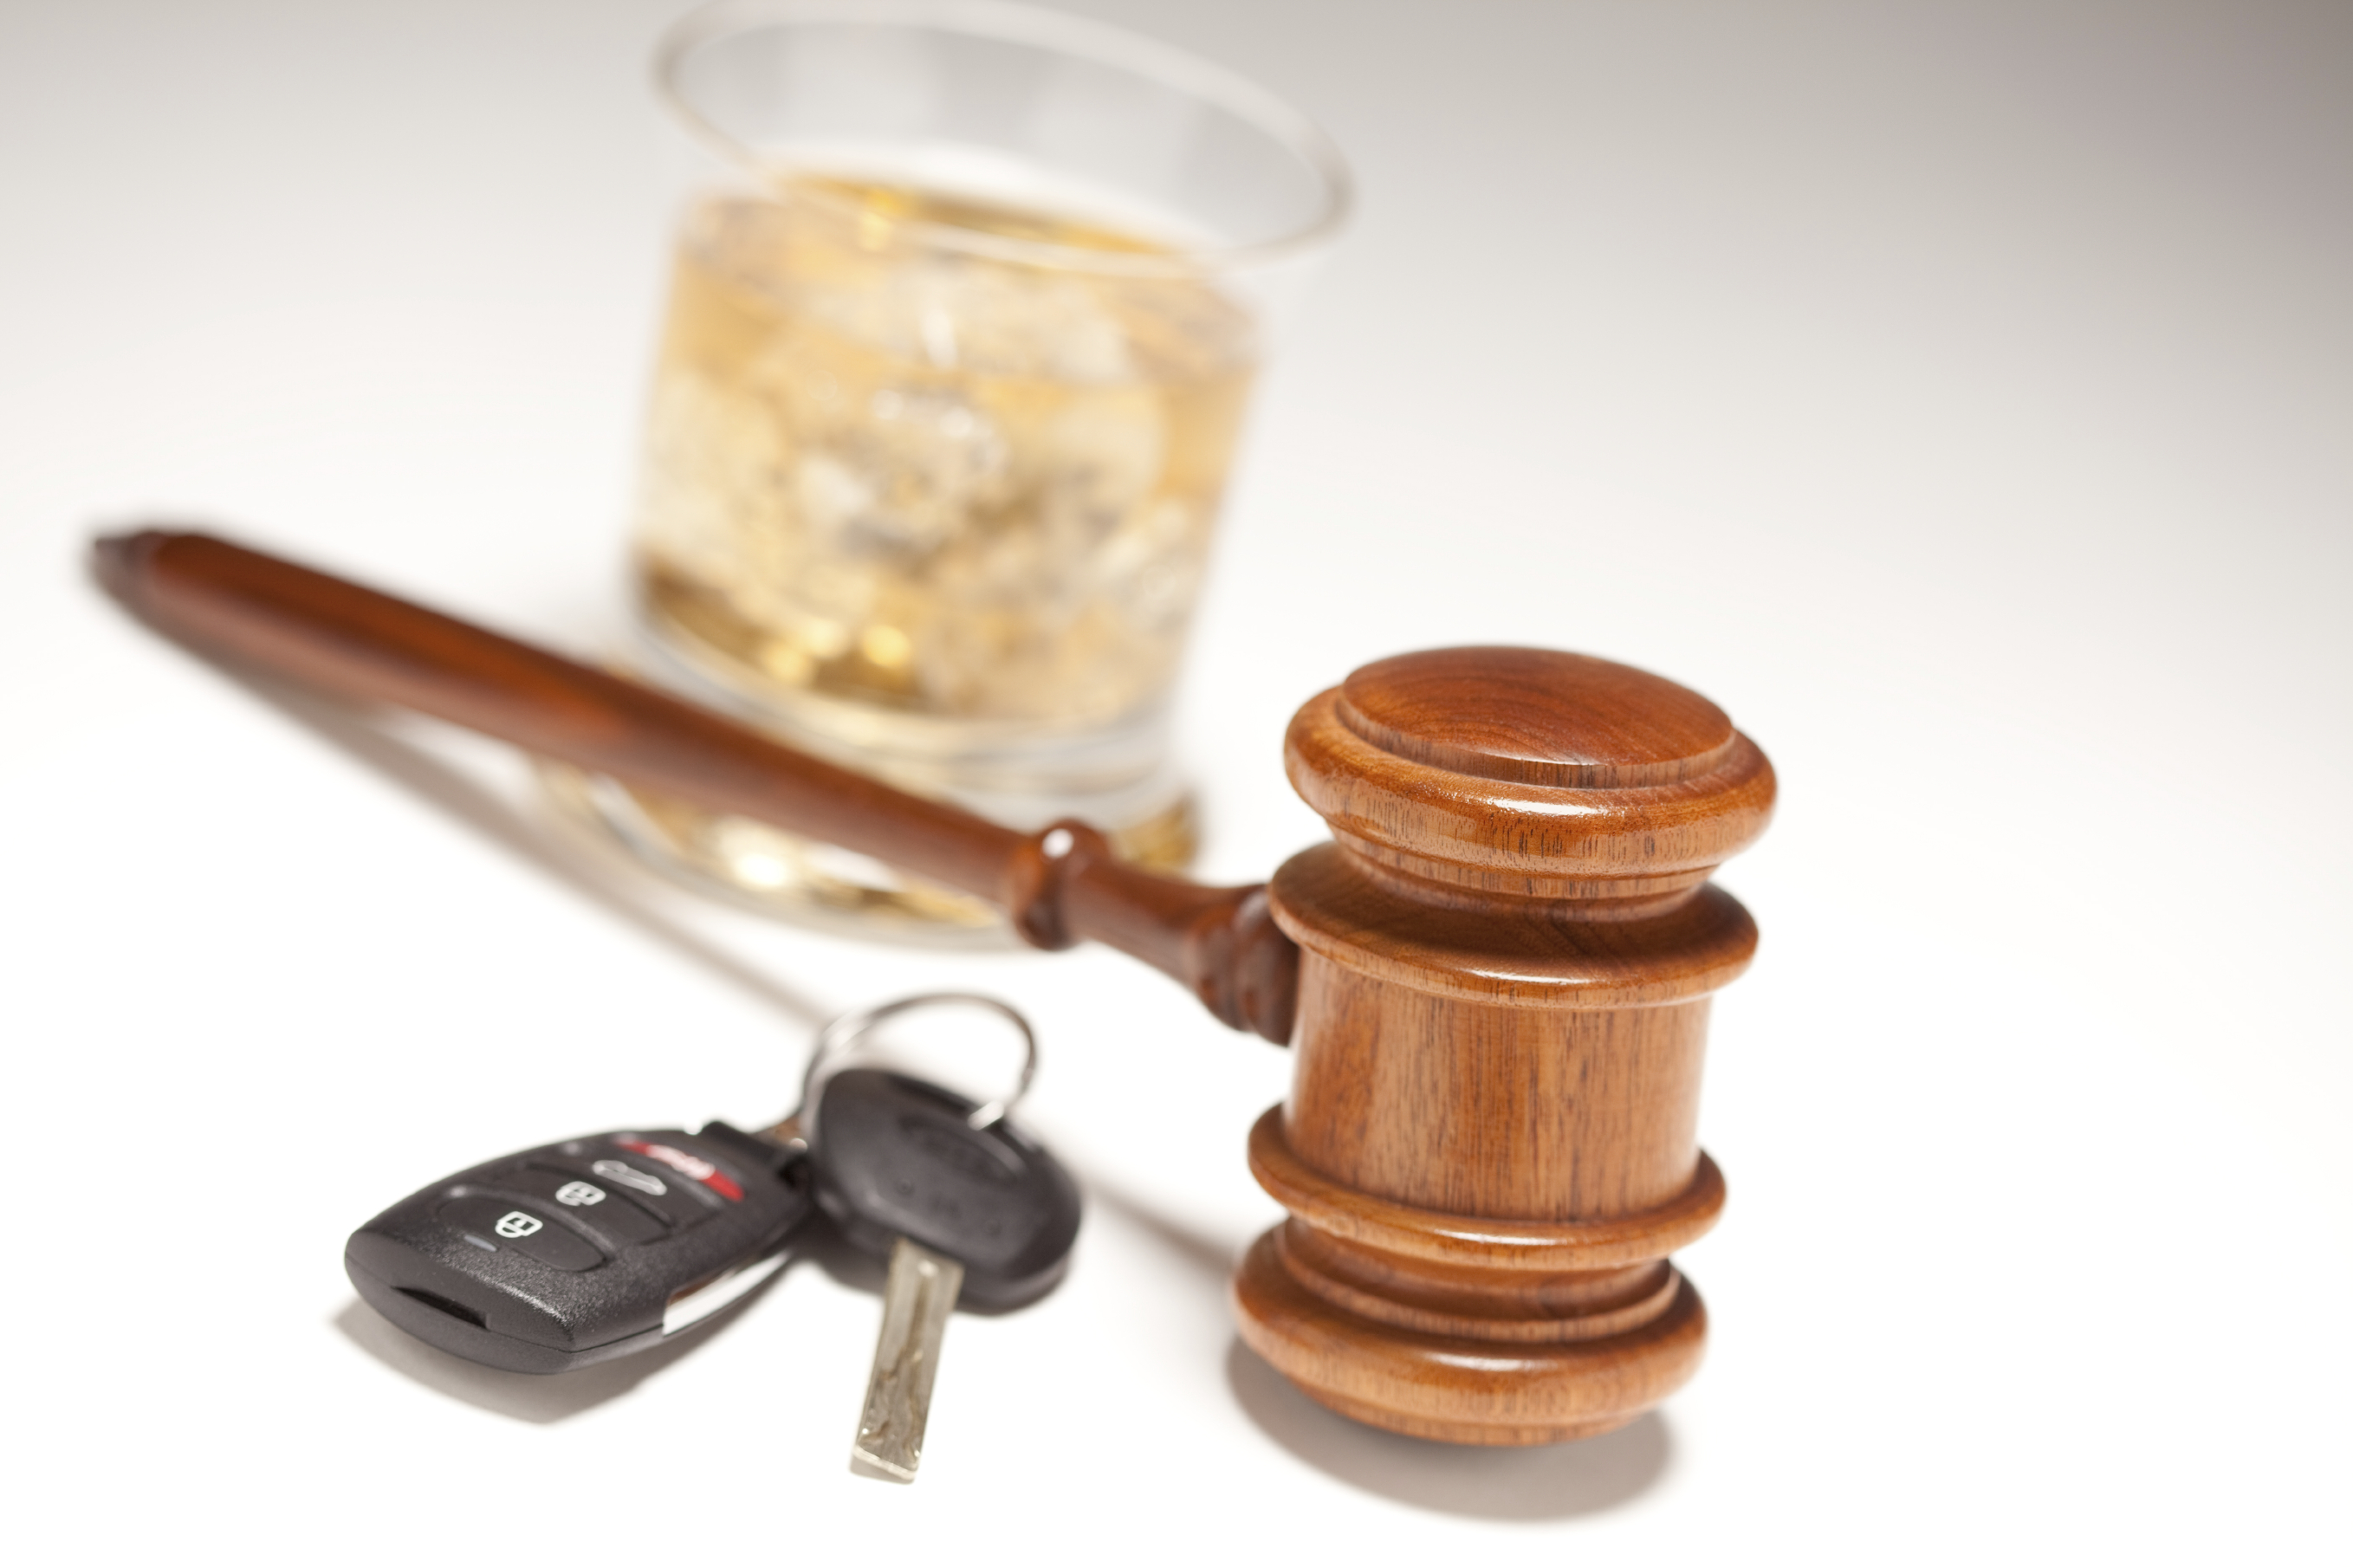 Gavel, Alcoholic Drink, Car Keys on a Gradated Background - Drinking and Driving Concept.